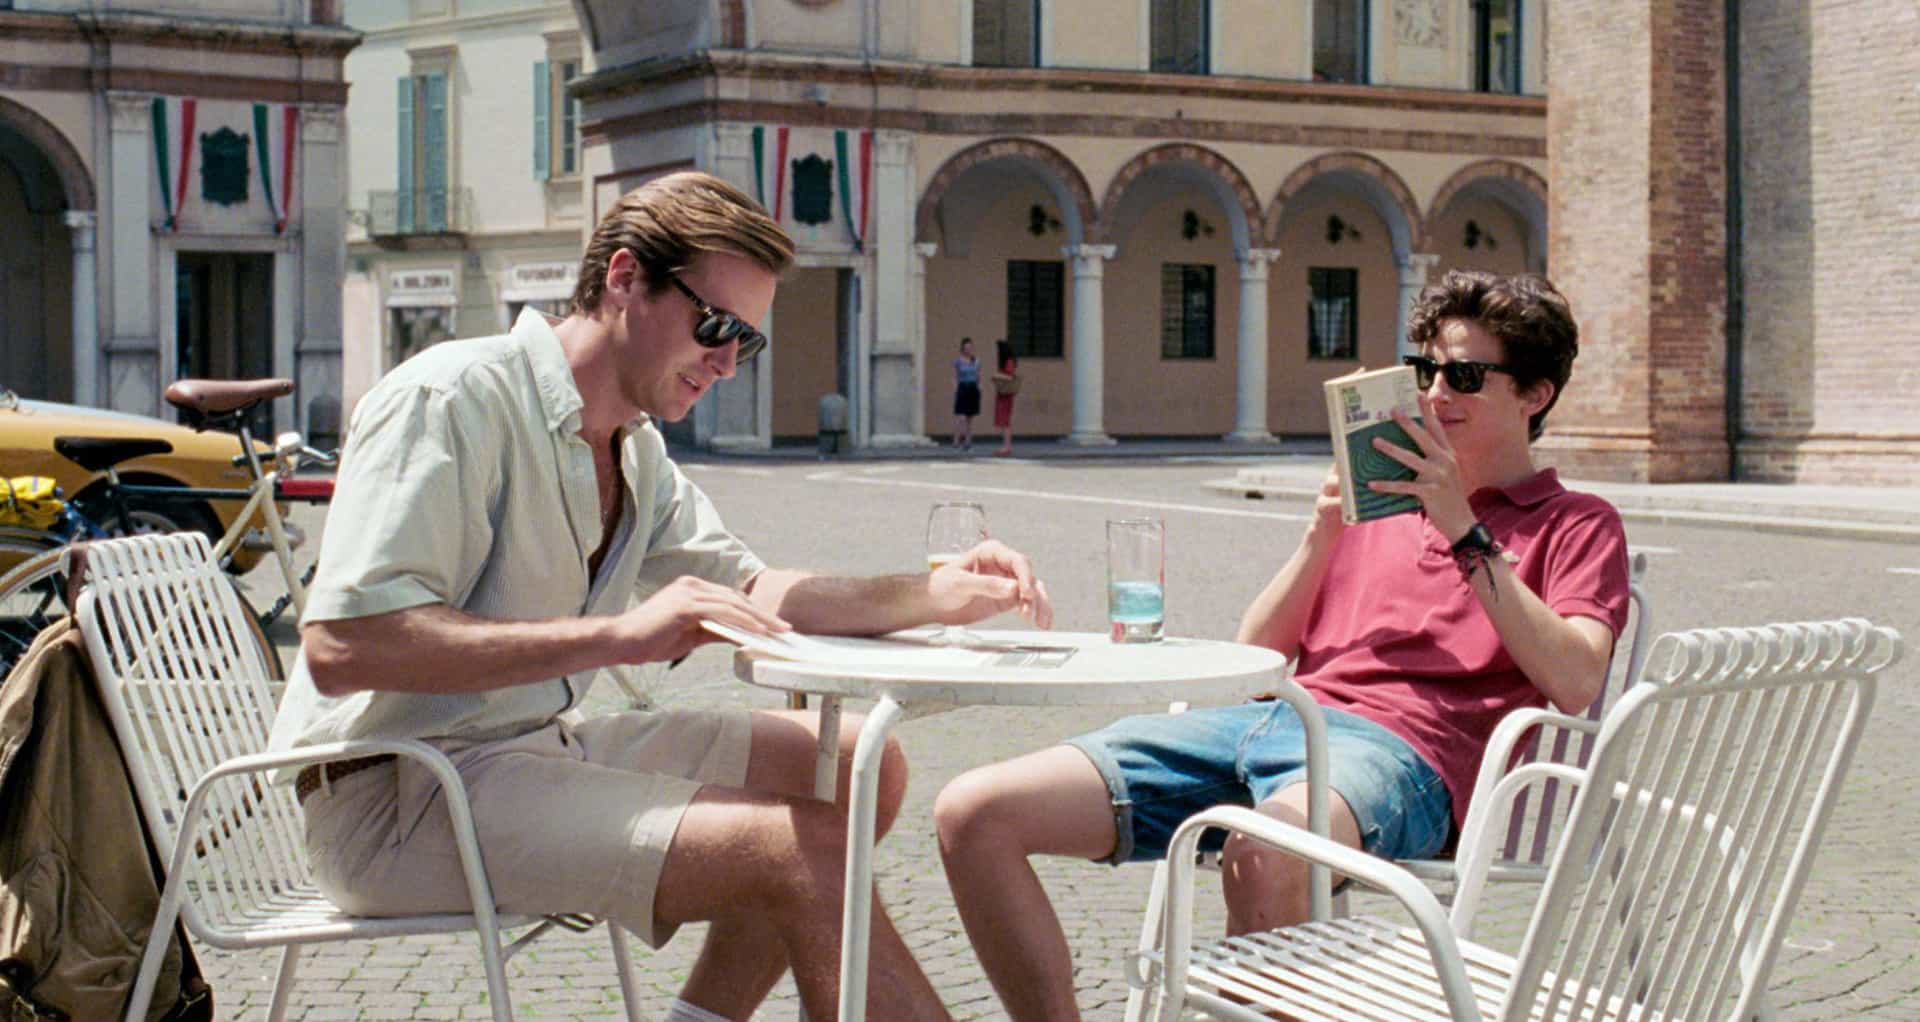 Sun, sand, and cinema: The best travel movies to inspire your summer vacation